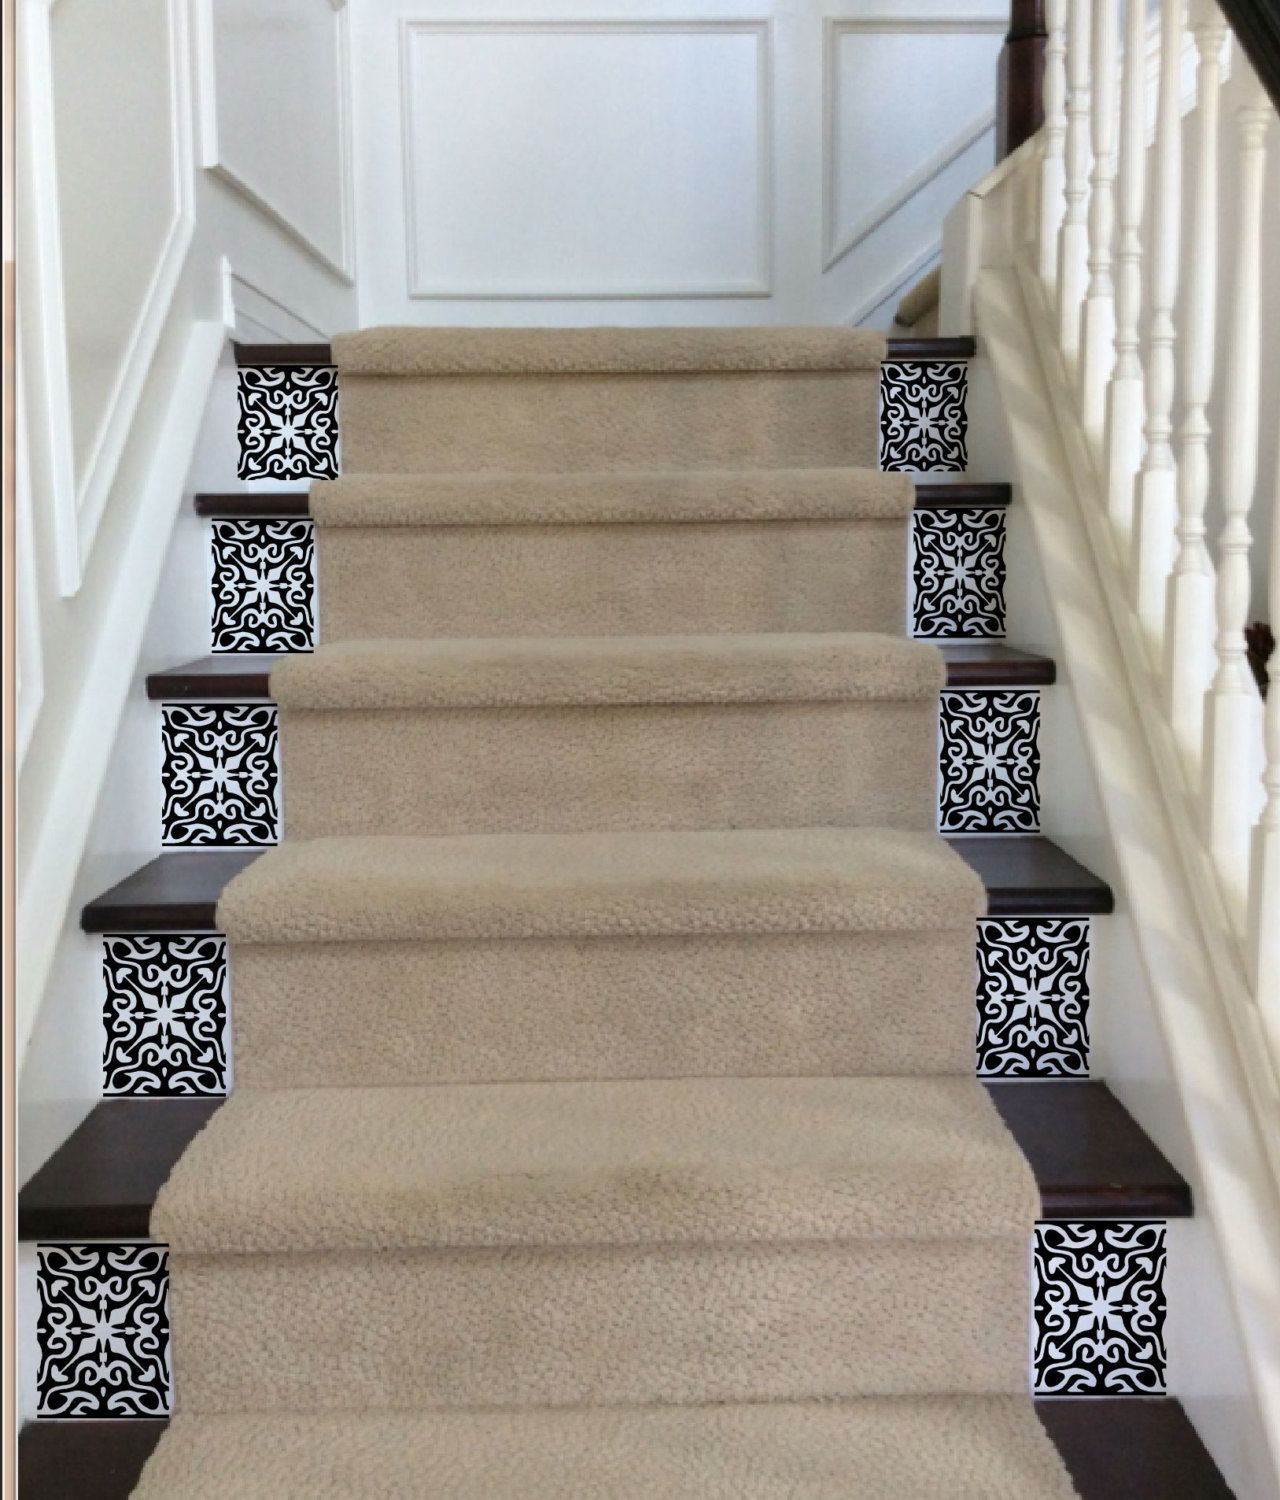 Vinyl Stair Tile Decals for Carpeted Stairs Vinyl will be cut to fit